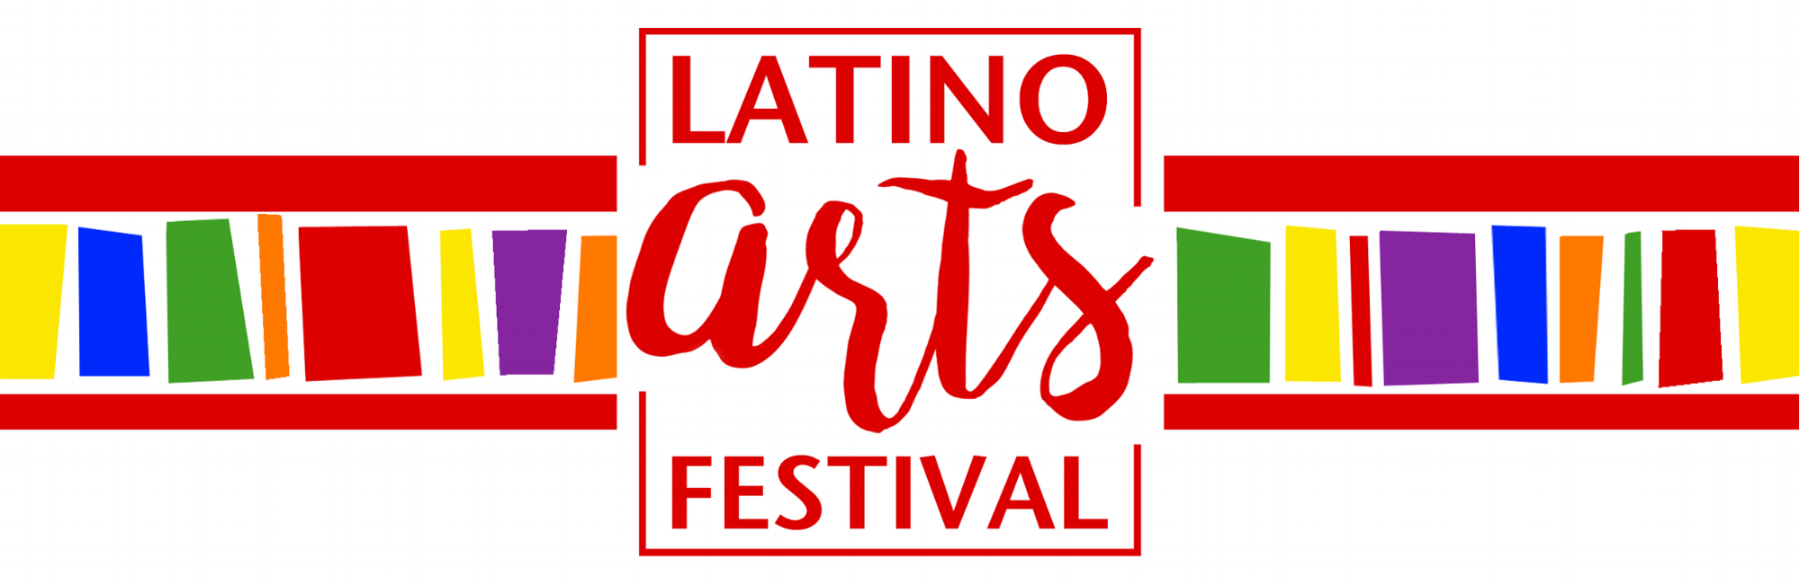 Click the banner above to go to the Latino Arts Festival website!